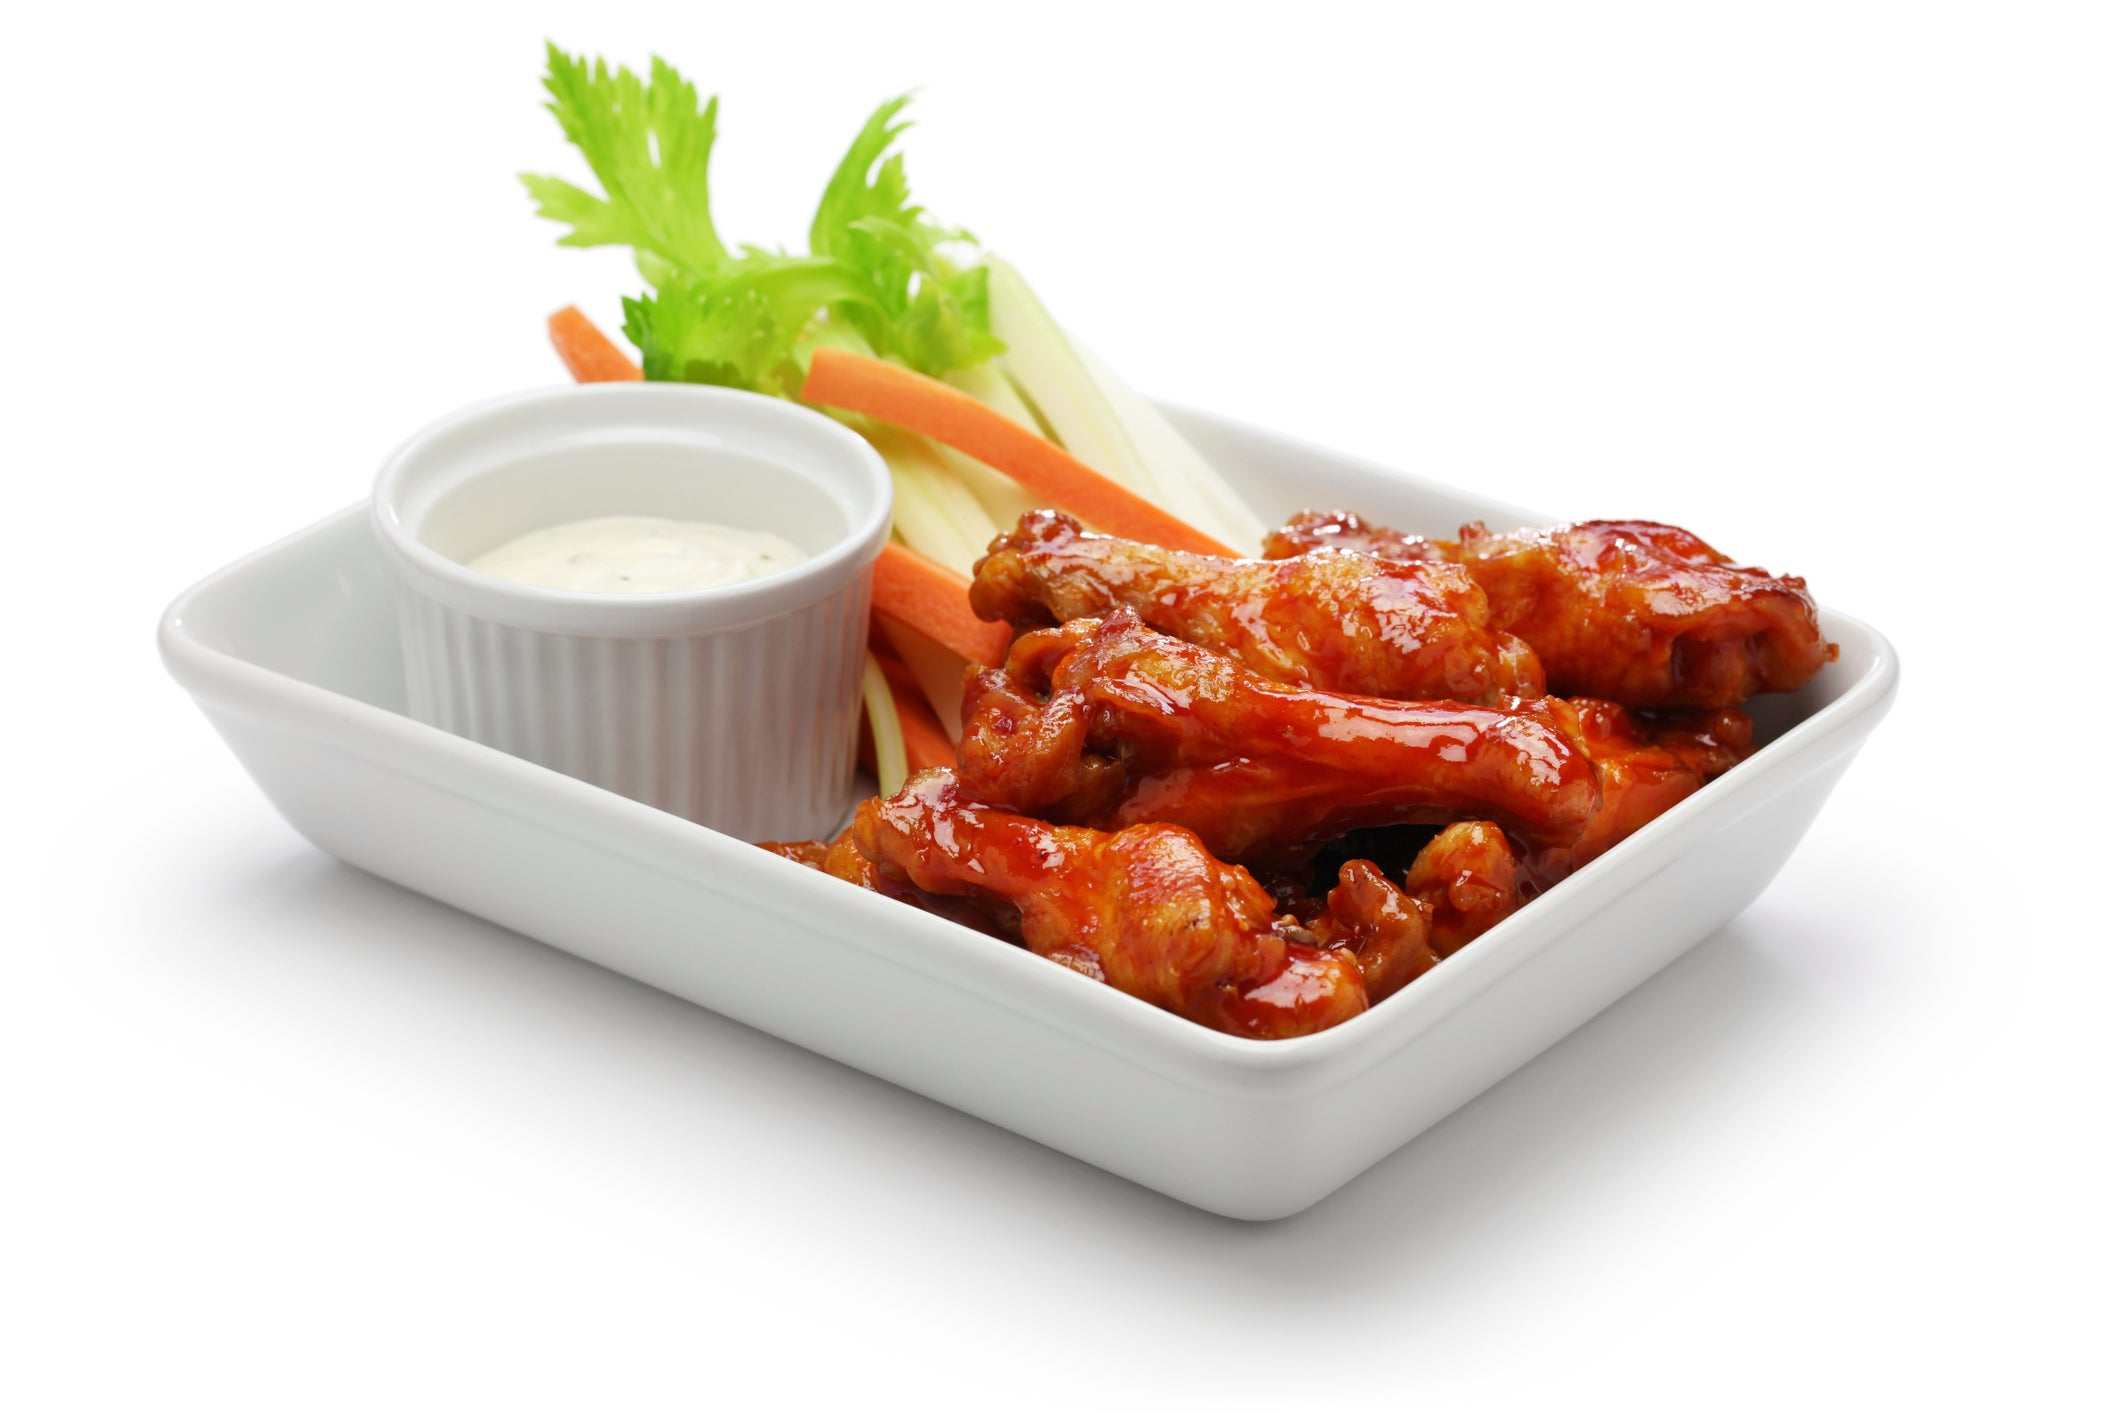 sale retailer 5c1ca d93d7 Why Buffalo Wild Wings Stock Fell 15% in July | The Motley Fool